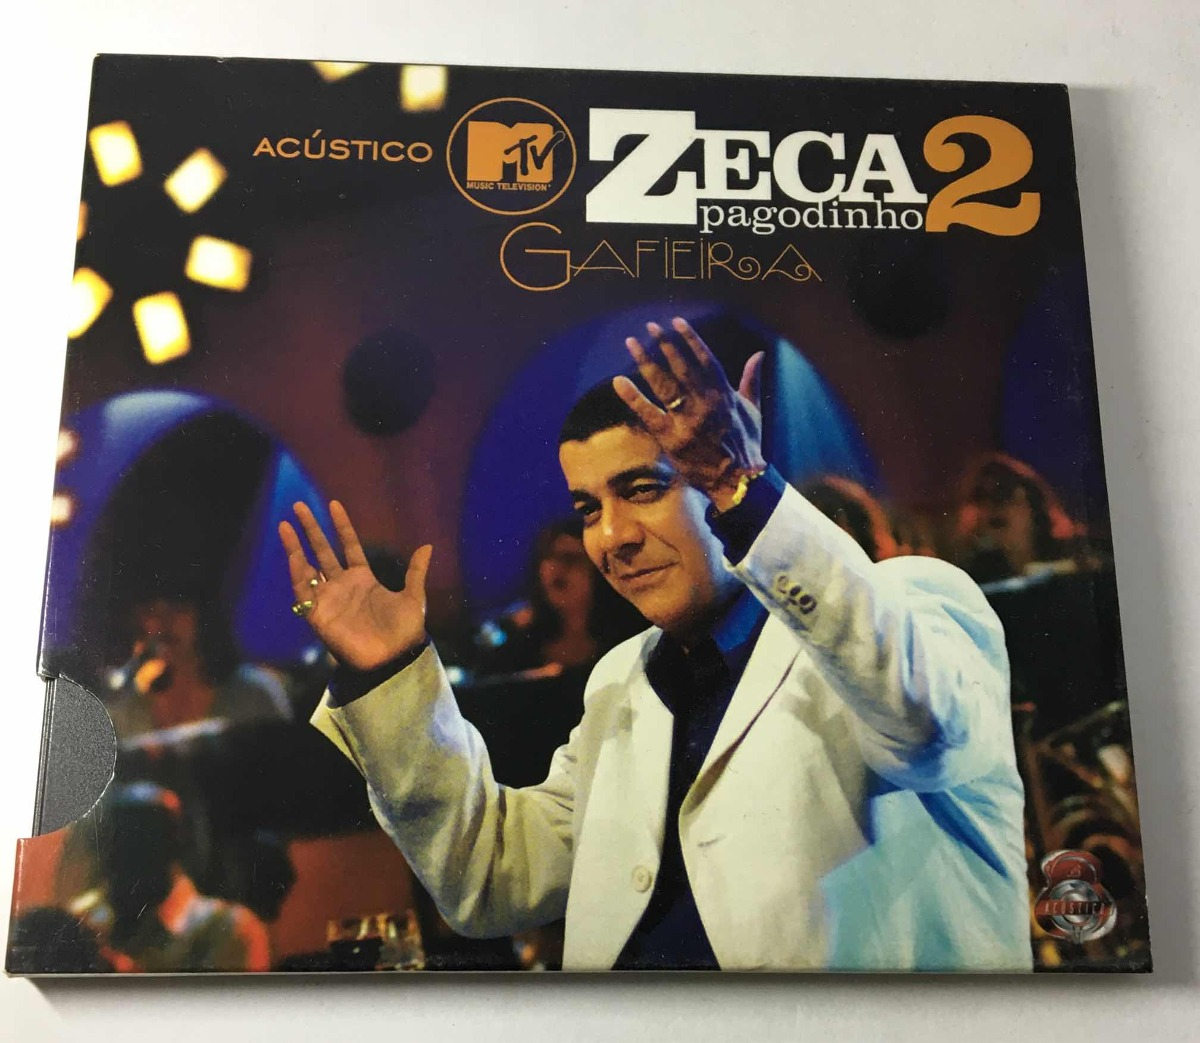 cd do zeca pagodinho gafieira